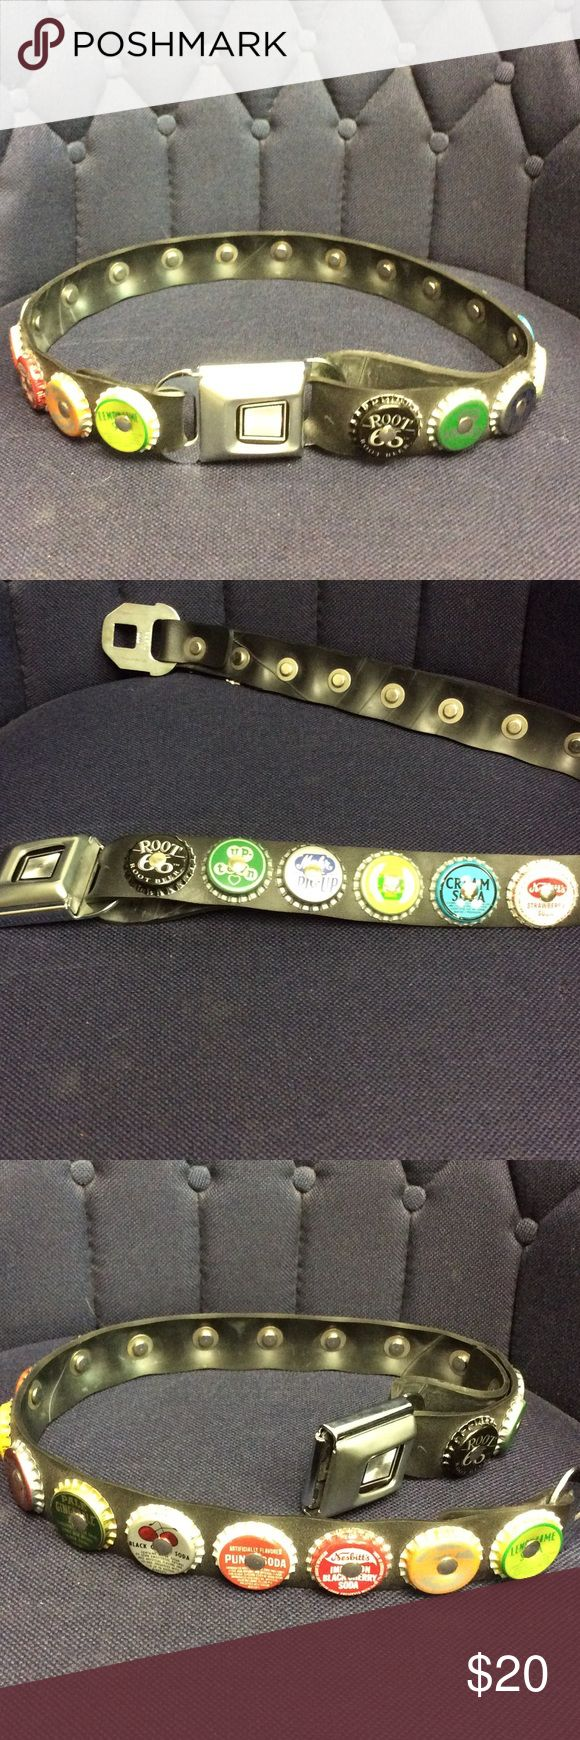 Awesome Pop Bottle Rubber Seatbelt Clasp Belt NWOT - This is an awesome black rubber belt with a real automobile seat belt buckle as a clasp. There are three interior snaps to adjust the belts size. Fits a 30-33 inch waist.  Bundle for a discount. Accessories Belts